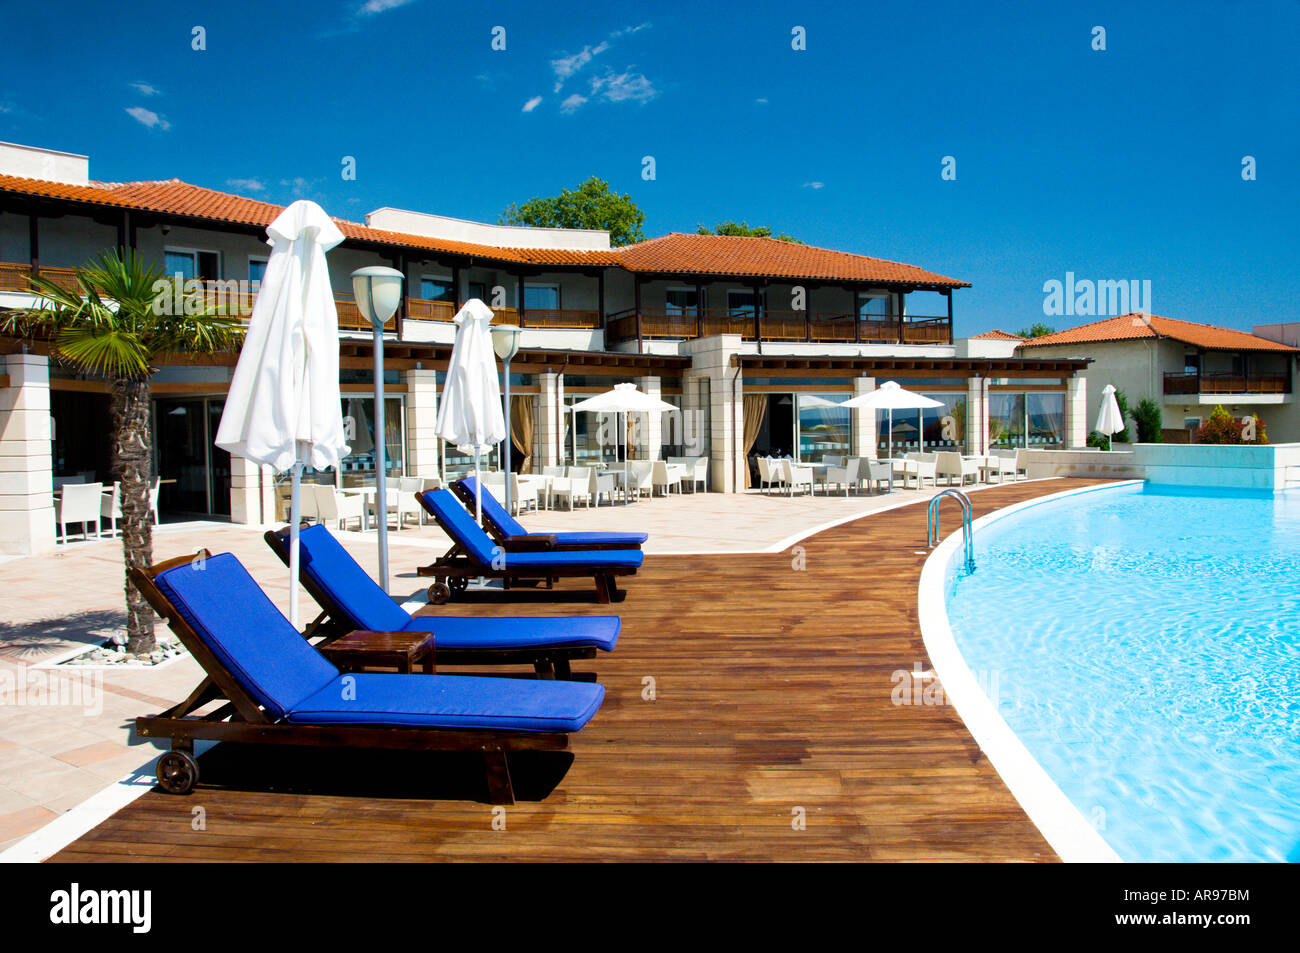 Pool Area With Blue Lounge Chairs At The Dion Palace Resort In Litohoro  Greece